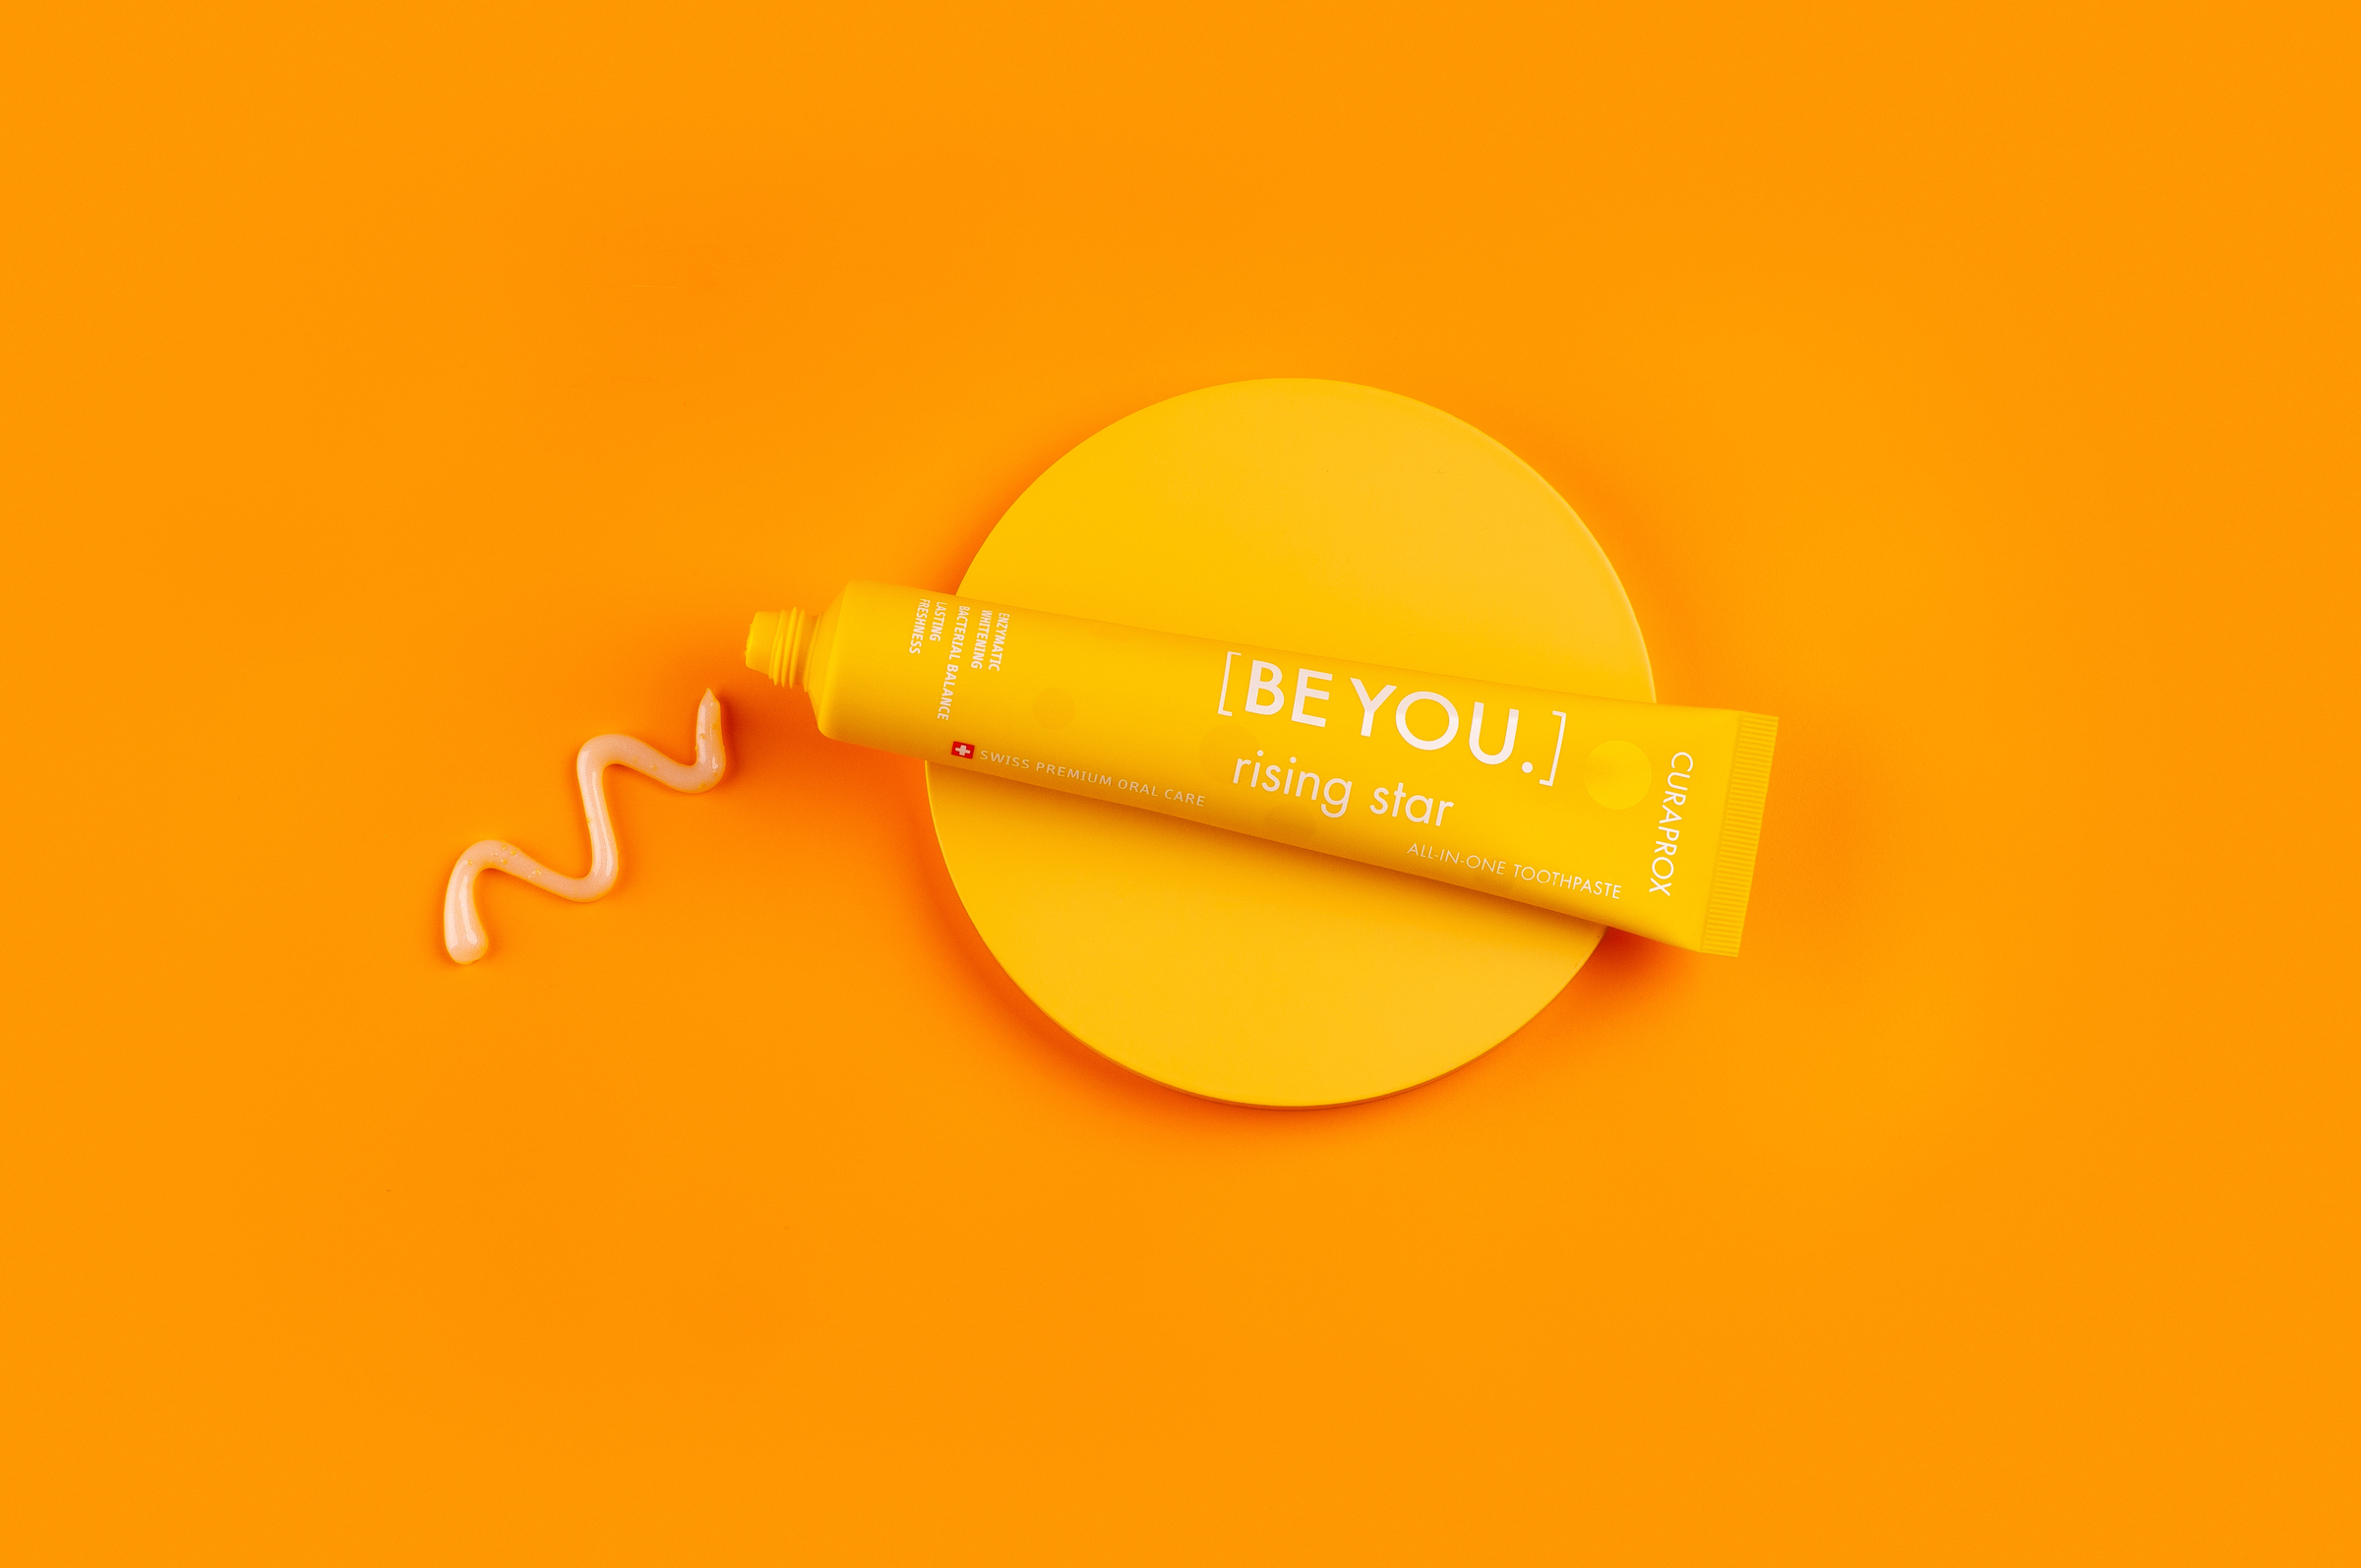 inspirational_picture-BE YOU-BY_toothpaste_yellow (1).jpg